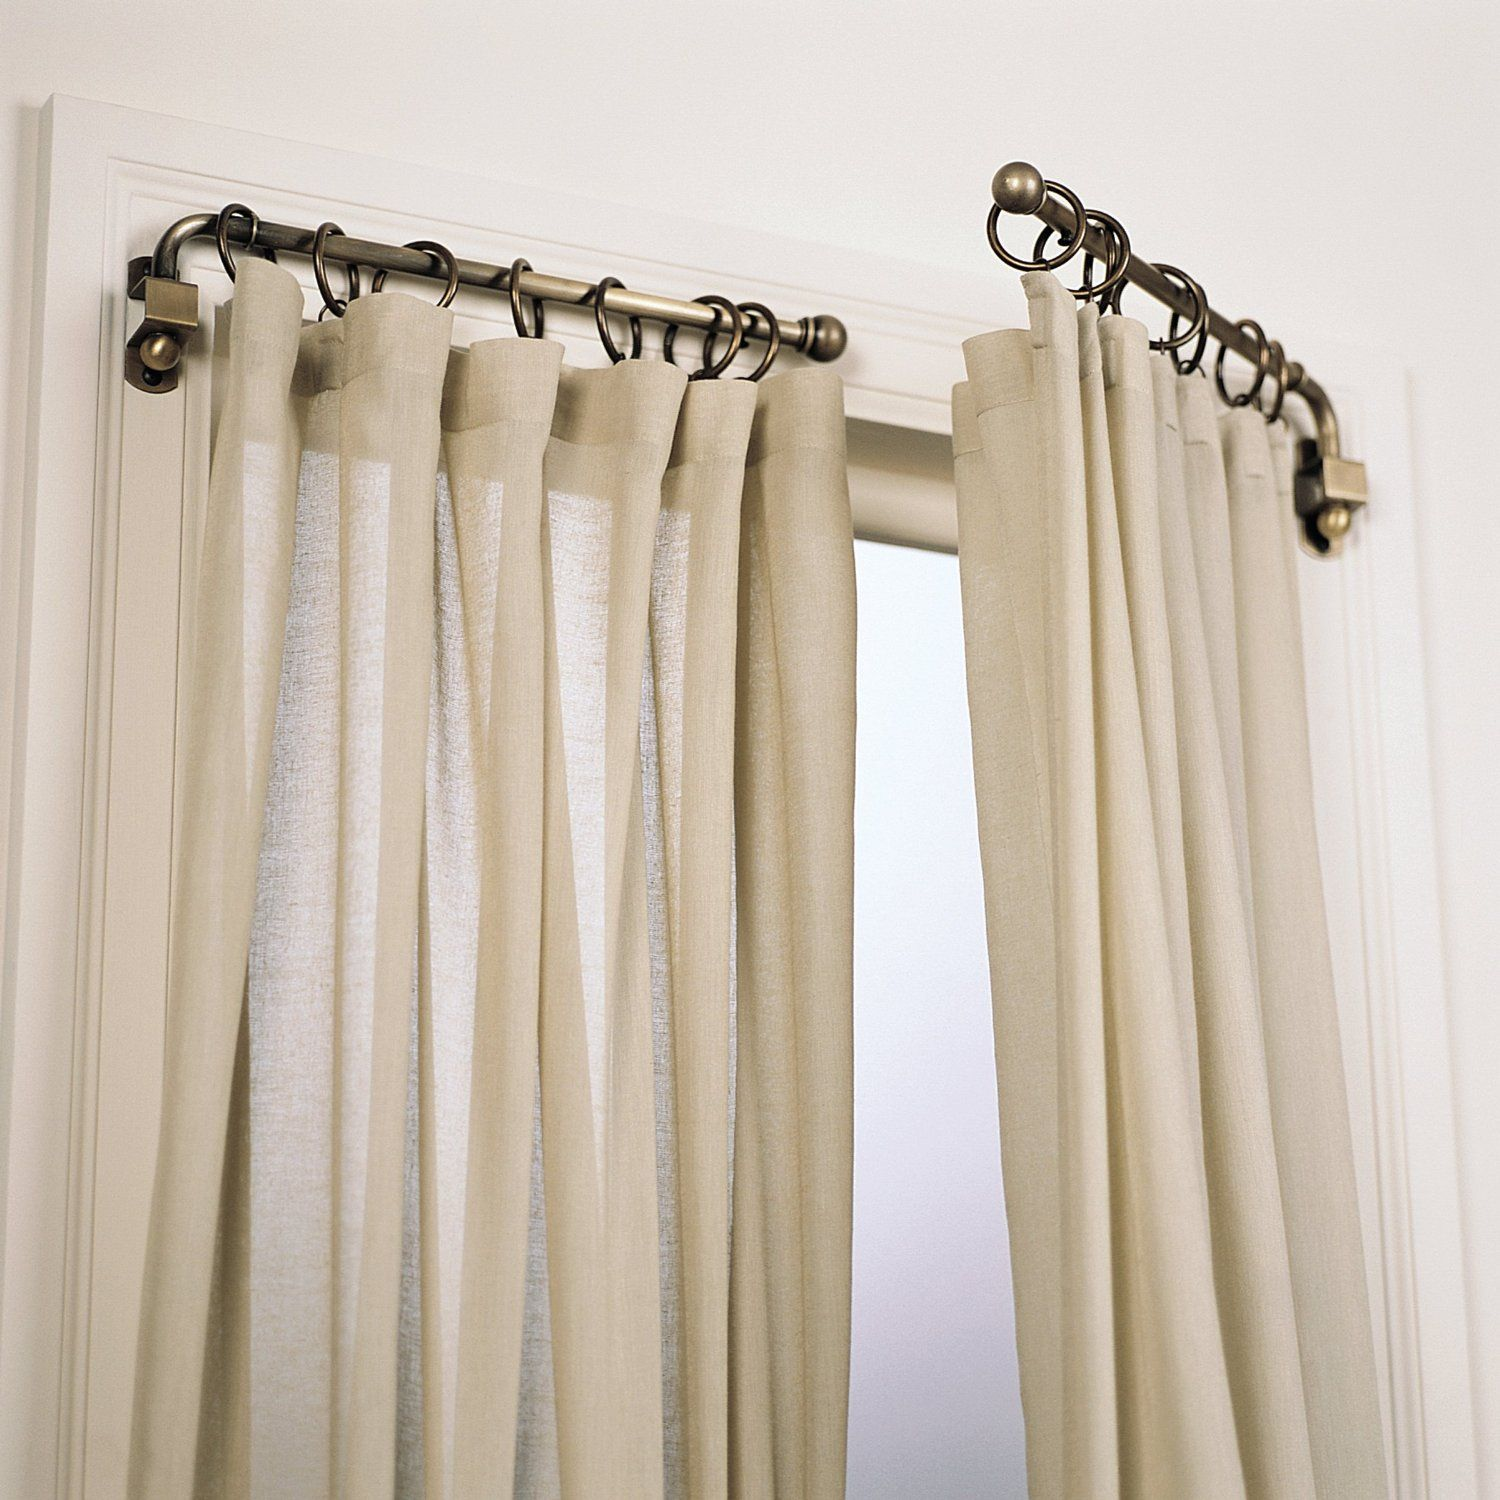 15 Unique Window Treatment Ideas Drapery Rods Swings